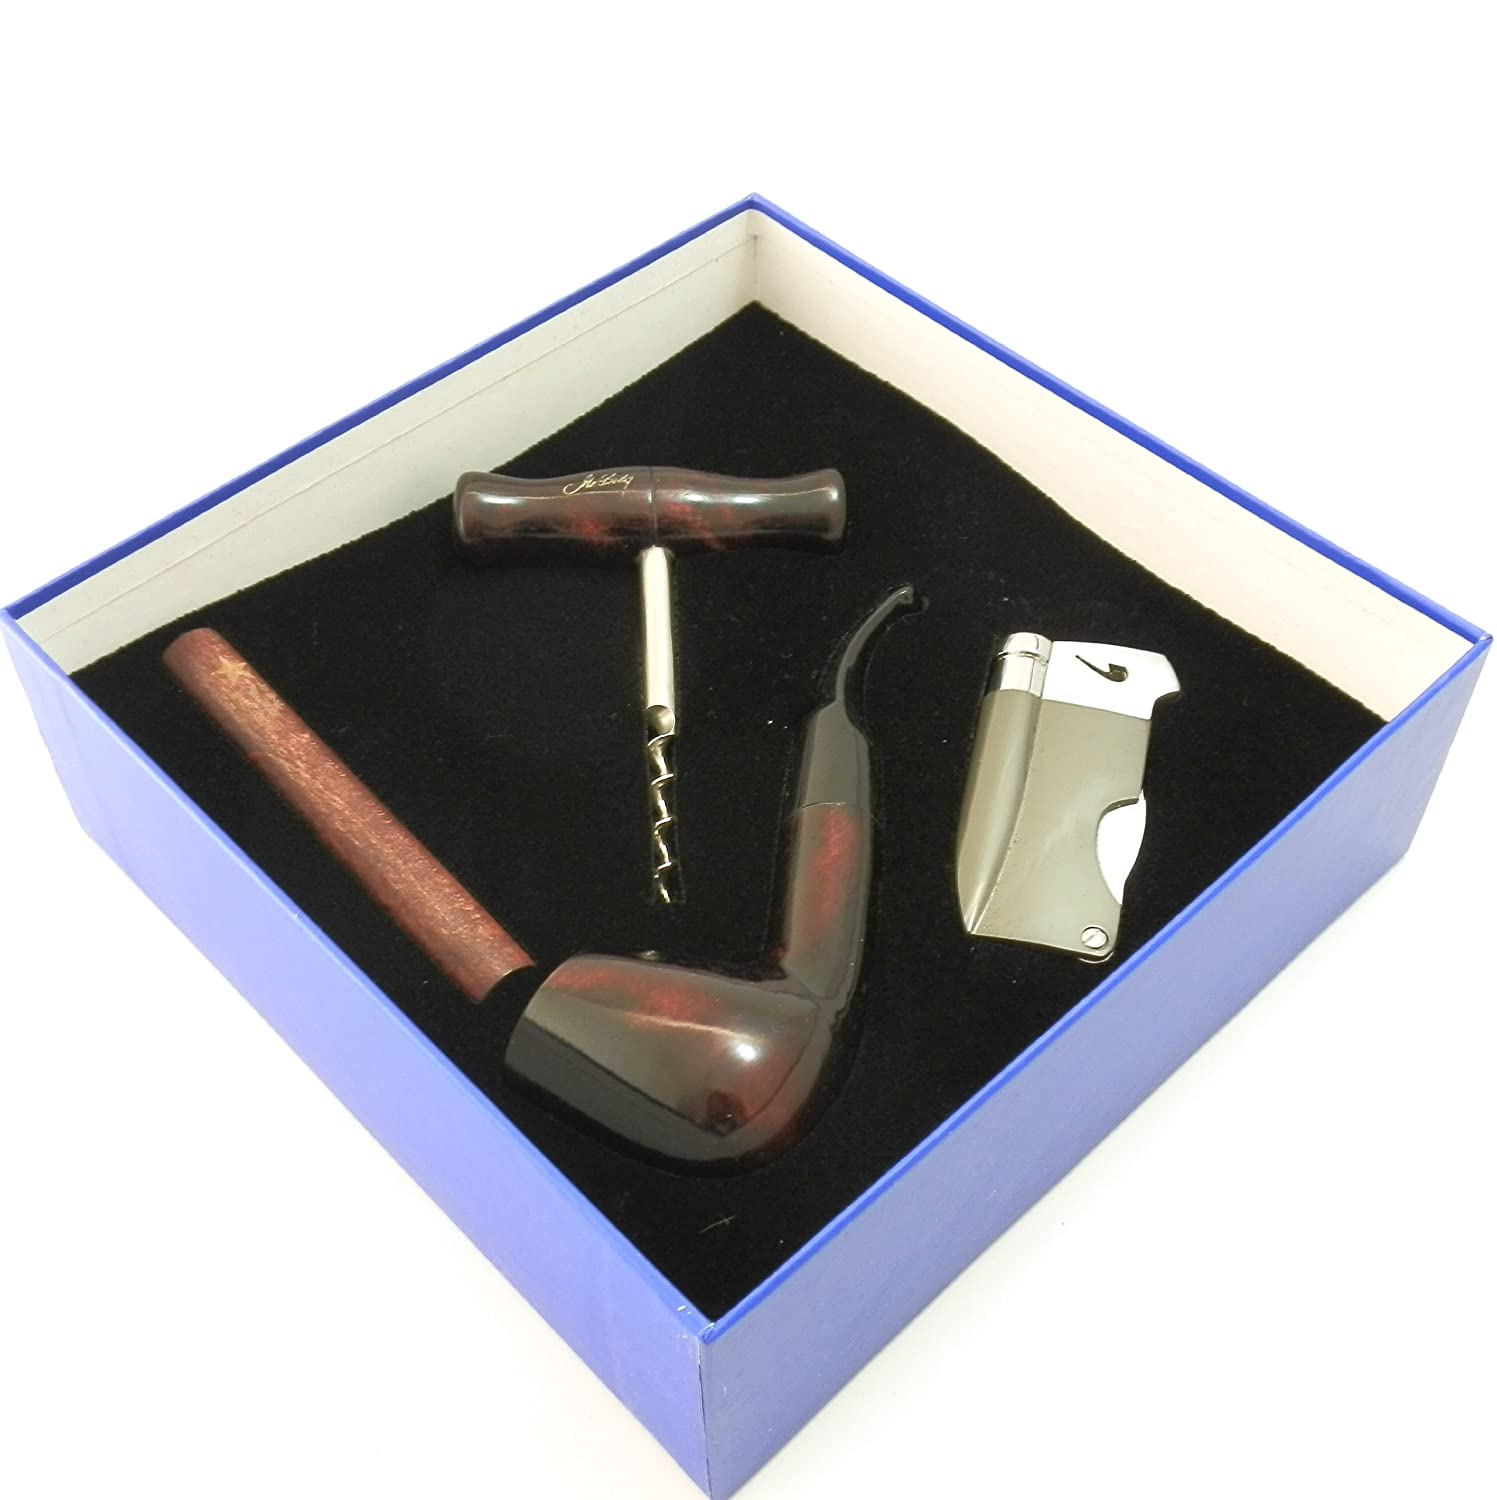 Tobacco Pipe Gift Set - Mr. Brog Silver Collection - Pipe, Stand, Tamper, Lighter w Tool, Wine Opener - Hand Made H&PC-70851